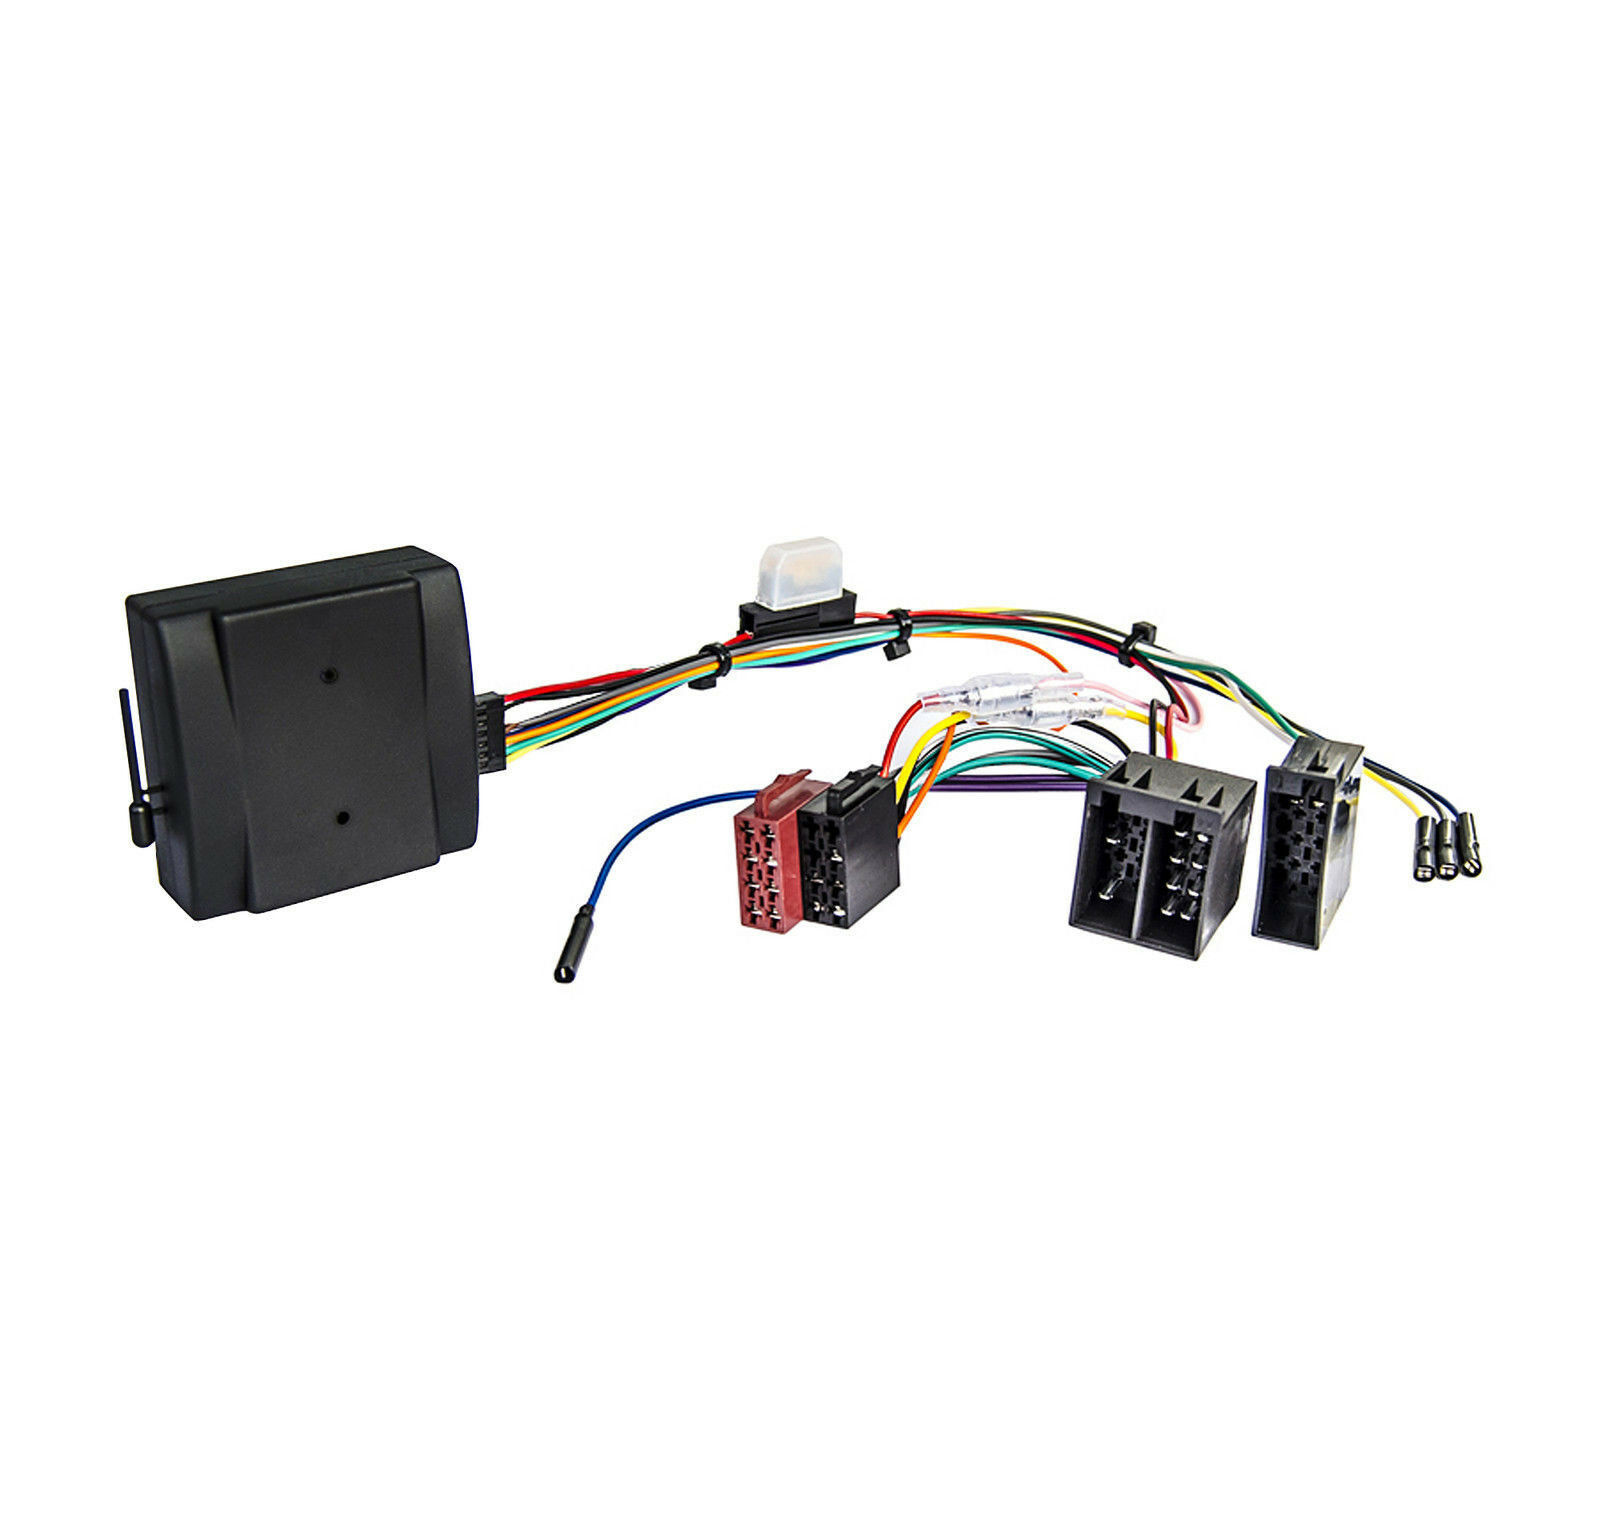 Wiring Harness Sony Mex 5di Mercedes Audio 10 Can Bus Radio Adapter Interface Komfort Zndung 1 Sur Voir Plus